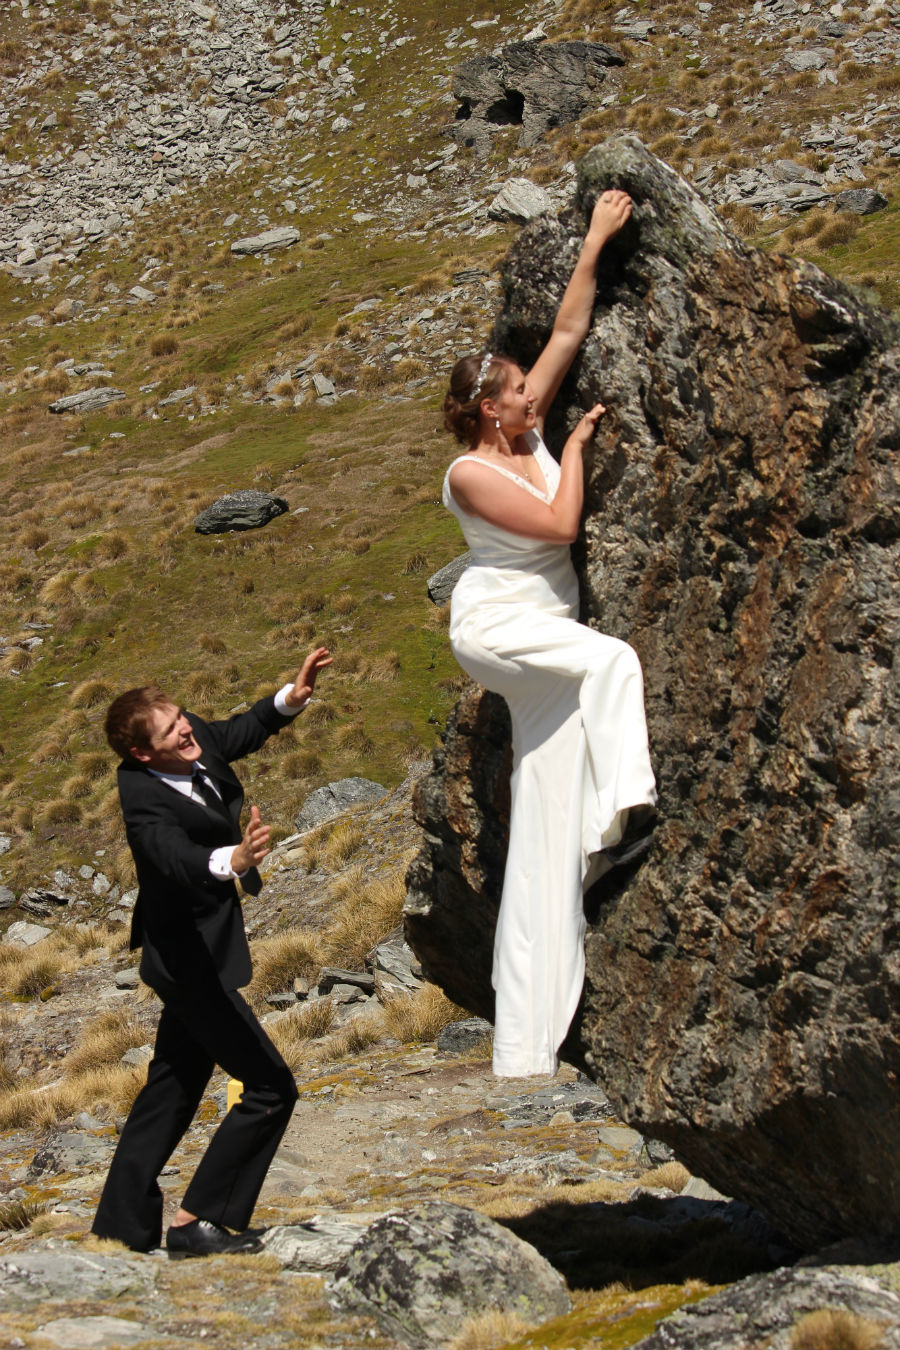 Queenstown adventure wedding complete with rock climbing bride!